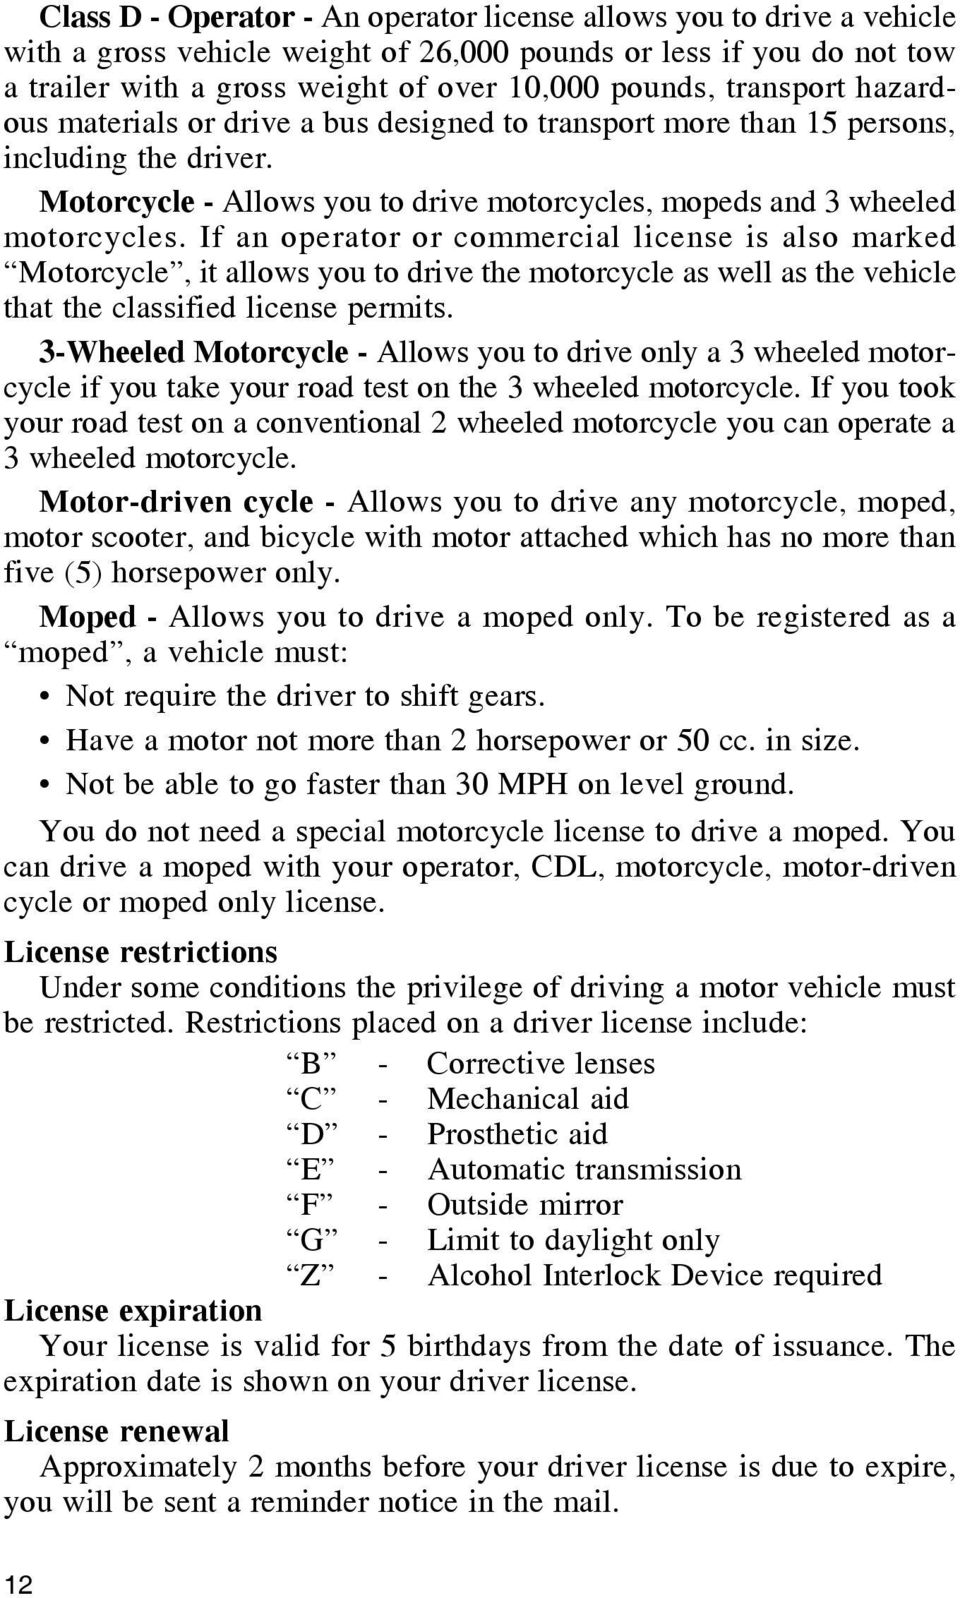 If an operator or commercial license is also marked Motorcycle, it allows you to drive the motorcycle as well as the vehicle that the classified license permits.